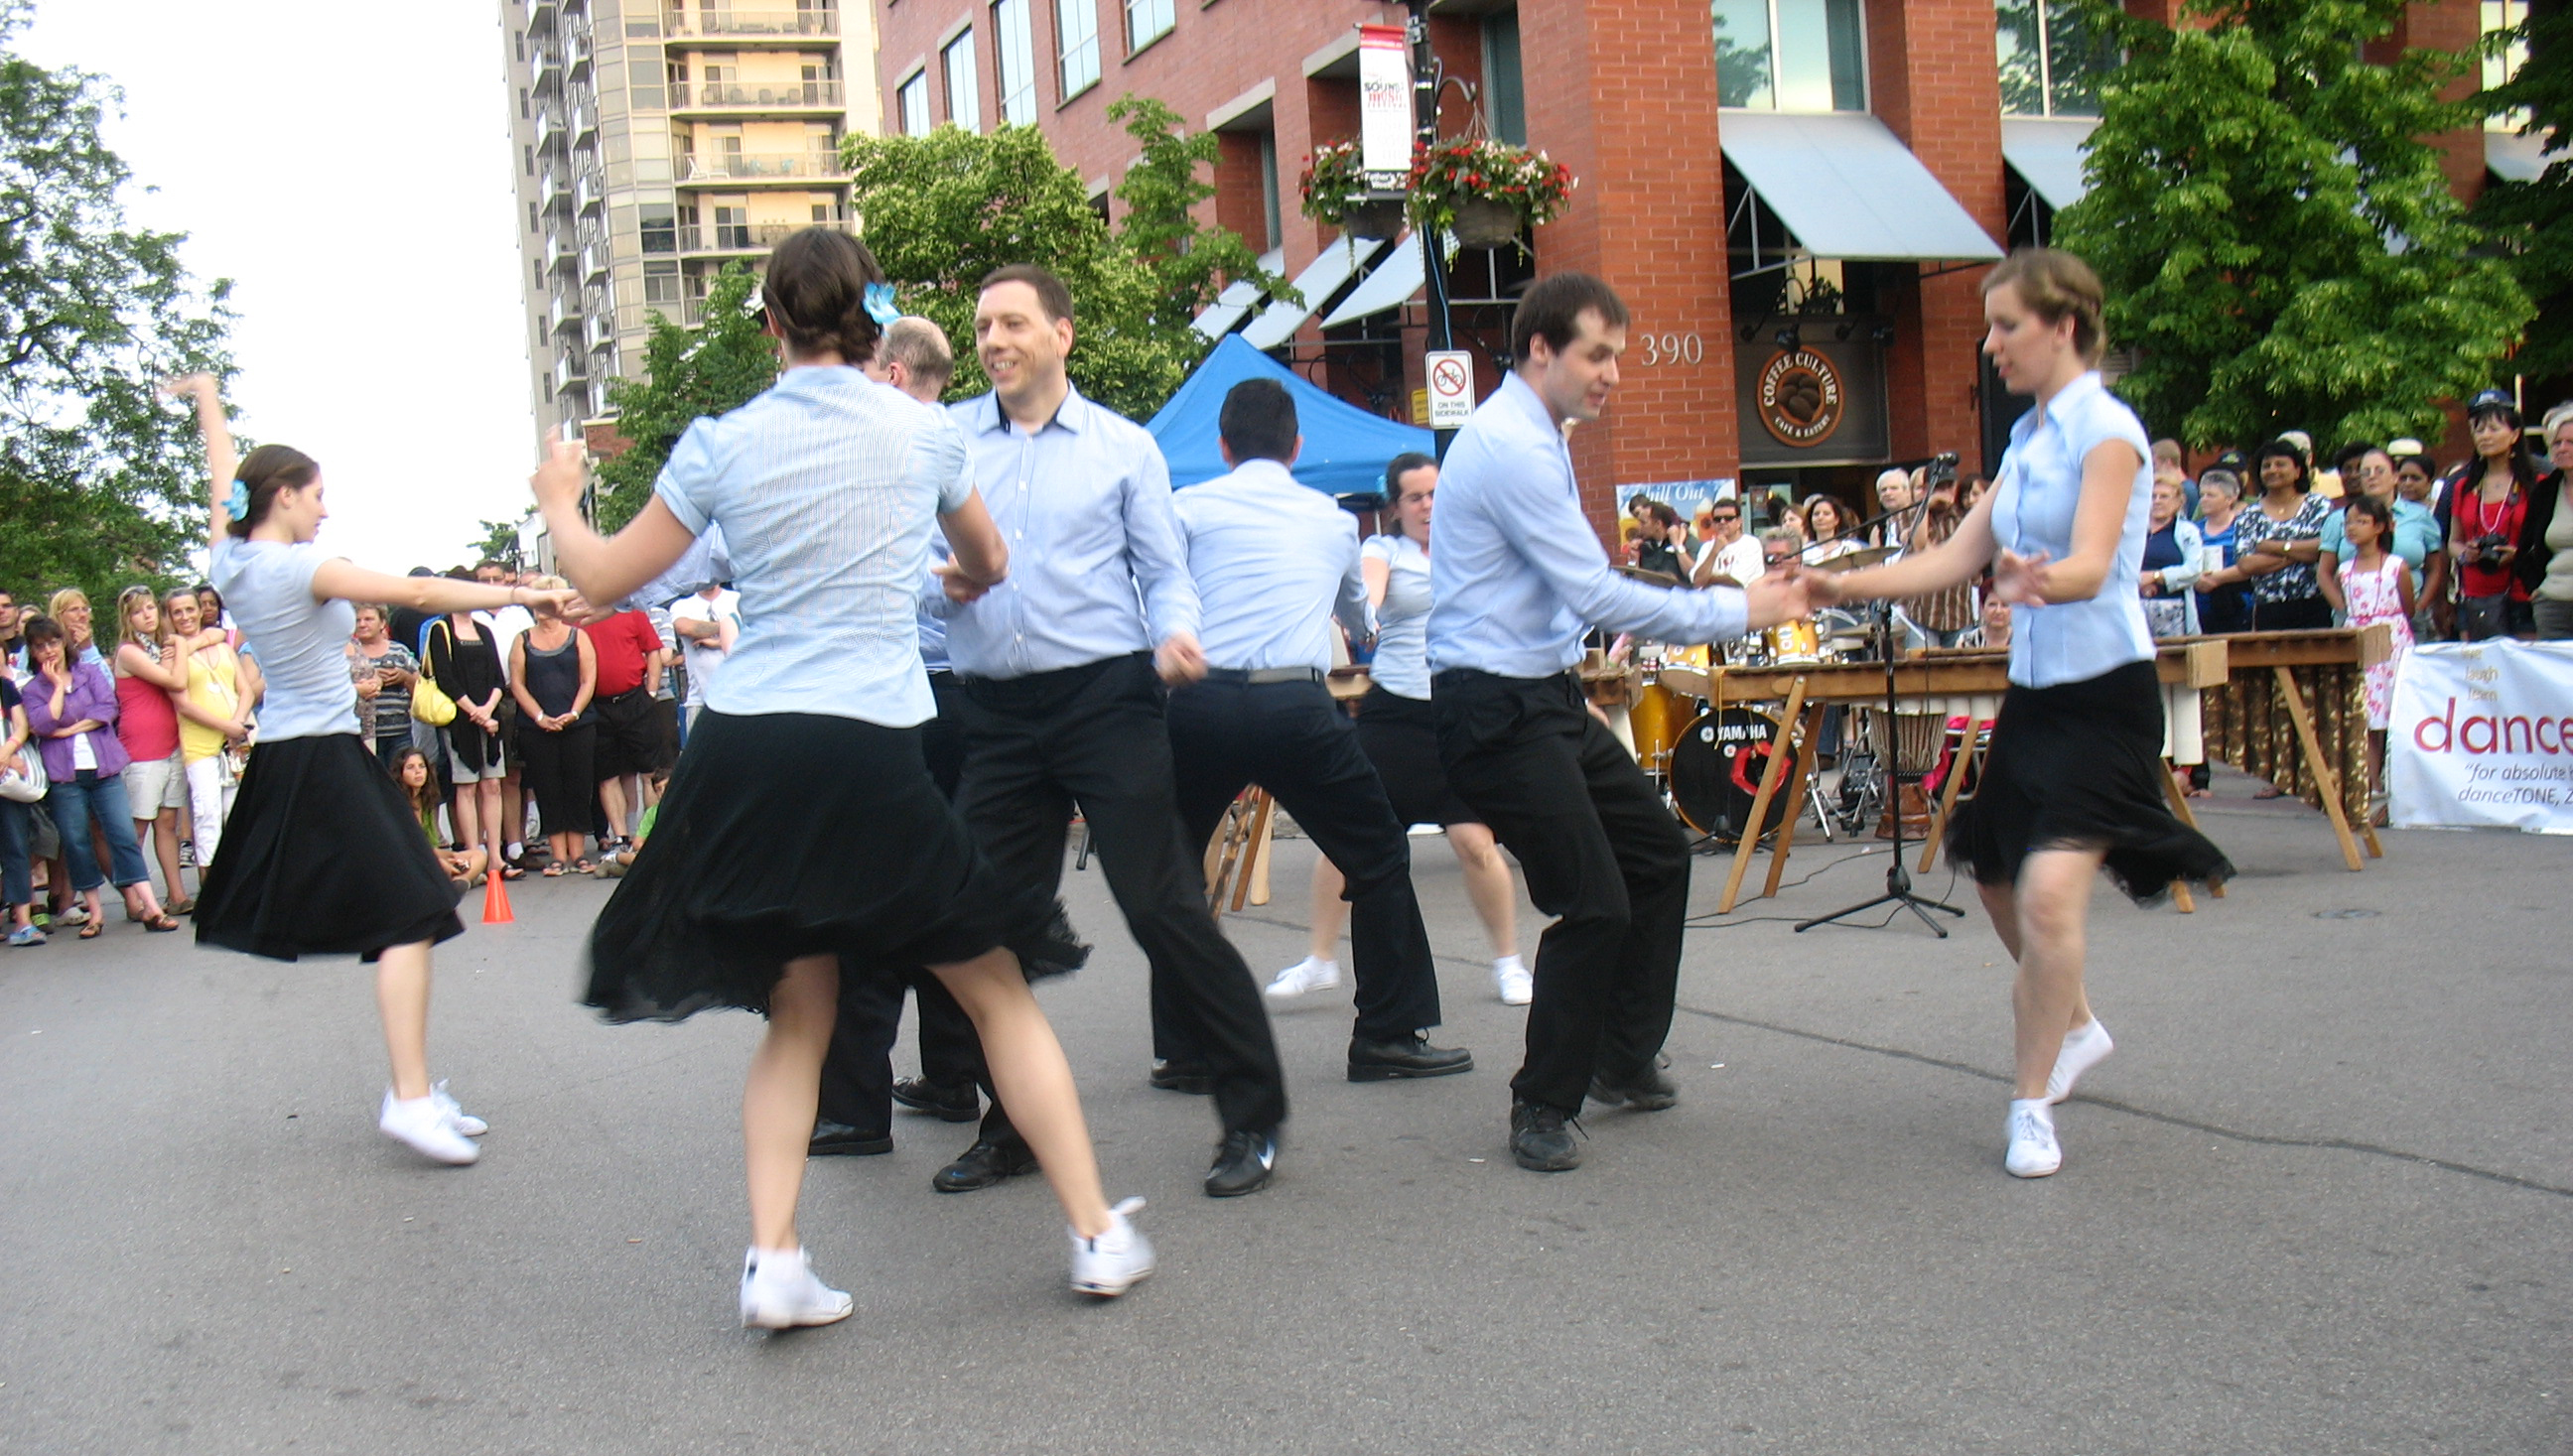 danceScape @ Burlington Sound of Music Festival – Hammer Hoppers Lindy Hop Full Demos (Saturday)